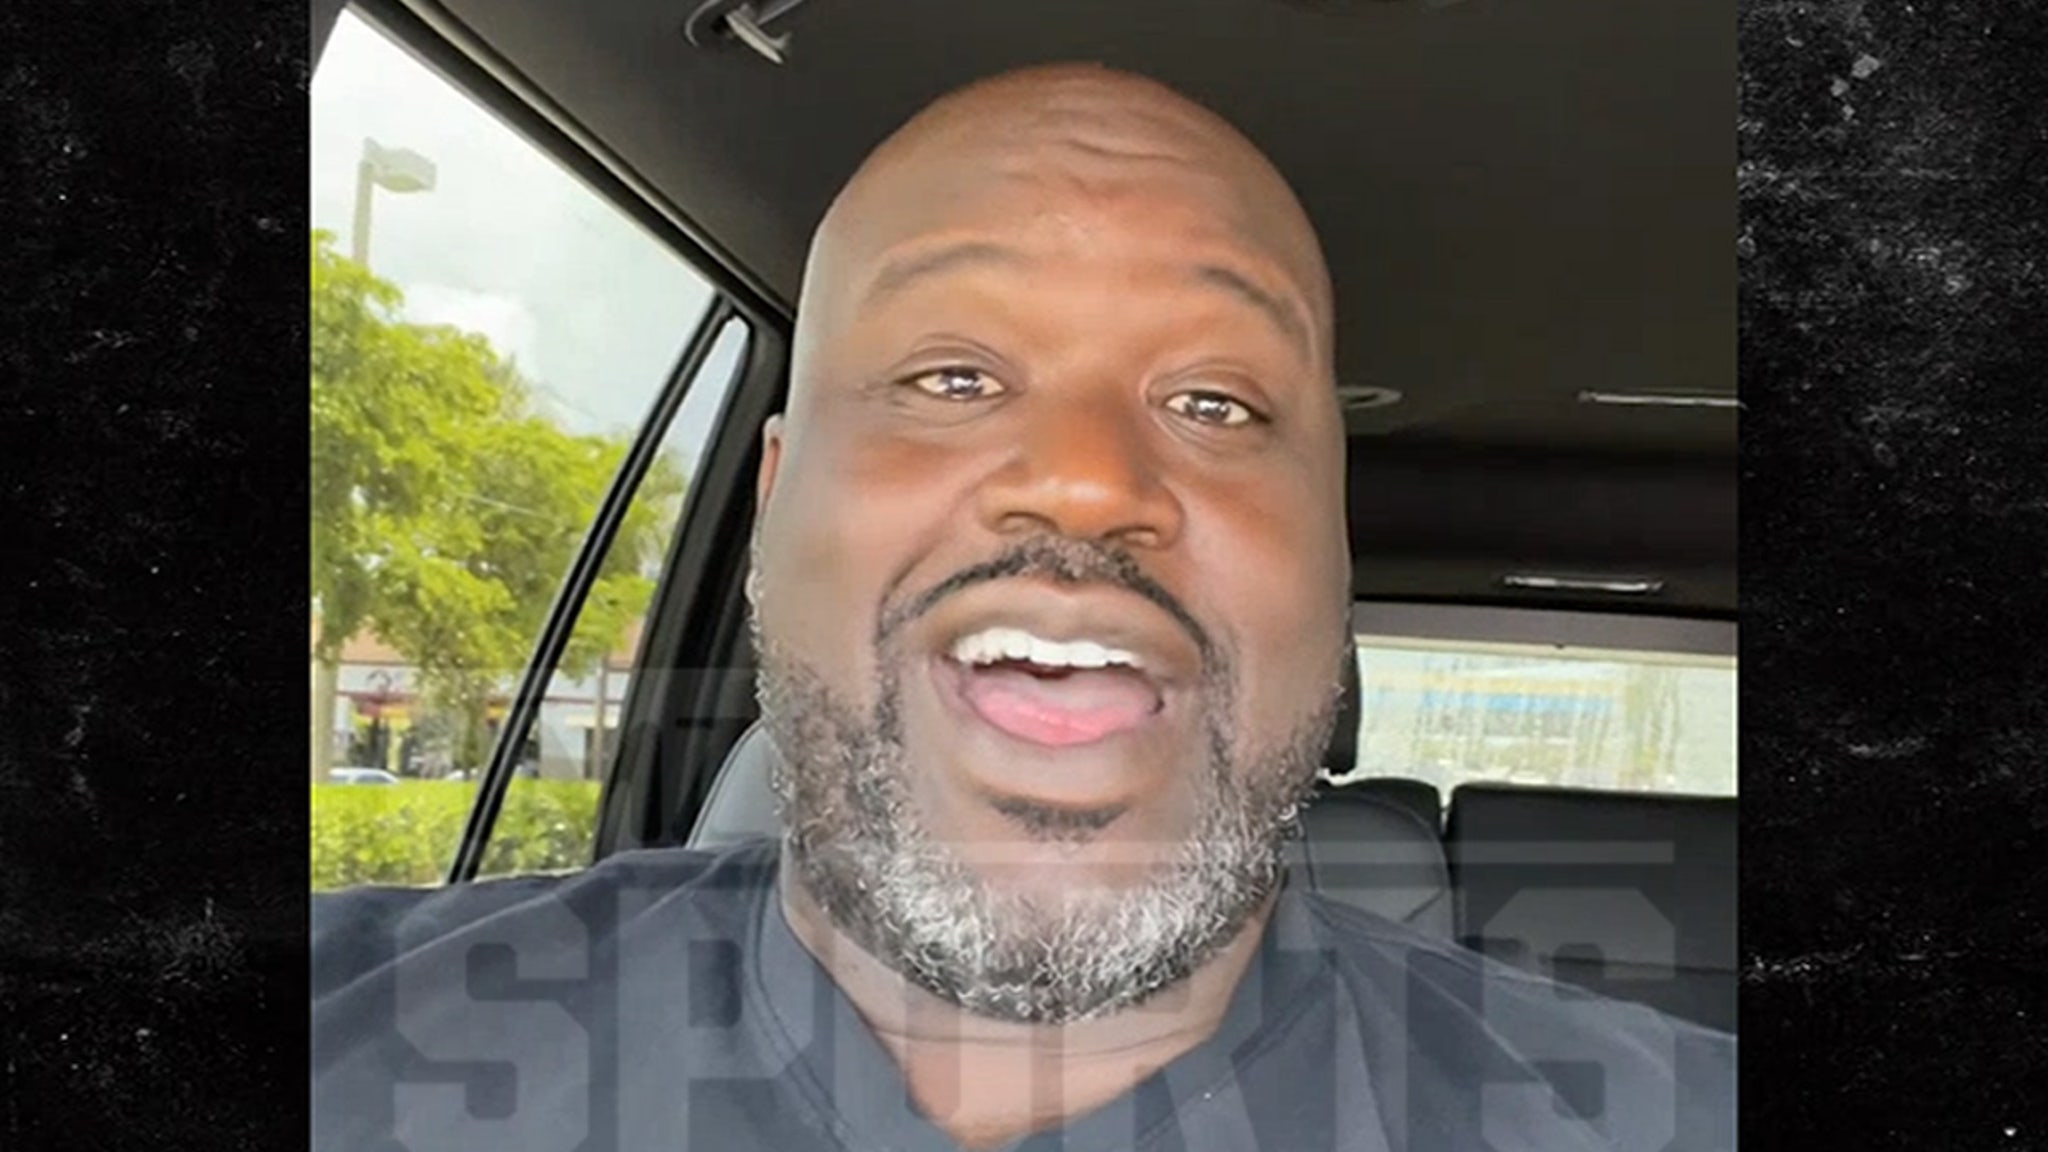 Shaquille O'Neal Makes Surprise Video For Fan At Bar Mitzvah thumbnail